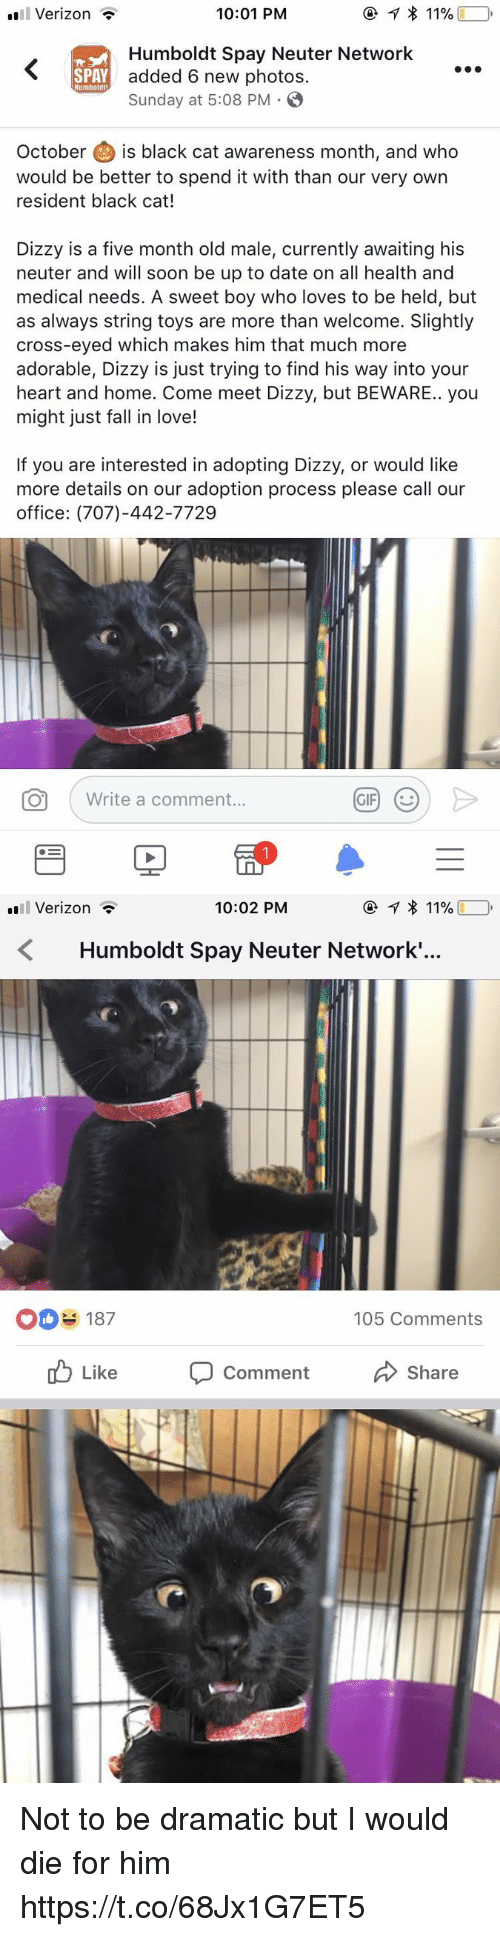 Fall, Love, and Soon...: 11 Verizon  10:01 PM  Humboldt Spay Neuter Network  added 6 new photos.  Sunday at 5:08 PM . S  SPAY  Humboldt  October is black cat awareness month, and who  would be better to spend it with than our very own  resident black cat!  Dizzy is a five month old male, currently awaiting his  neuter and will soon be up to date on all health and  medical needs. A sweet boy who loves to be held, but  as always string toys are more than welcome. Slightly  cross-eyed which makes him that much more  adorable, Dizzy is just trying to find his way into your  heart and home. Come meet Dizzy, but BEWARE.. you  might just fall in love!  If you are interested in adopting Dizzy, or would like  more details on our adoption process please call our  office: (707)-442-7729  O  Write a comment   Verizon  10:02 PM  ④イ 1 )  Humboldt Spay Neuter Network.'...  OD 187  105 Comments  ub Like  Comment  Share Not to be dramatic but I would die for him https://t.co/68Jx1G7ET5